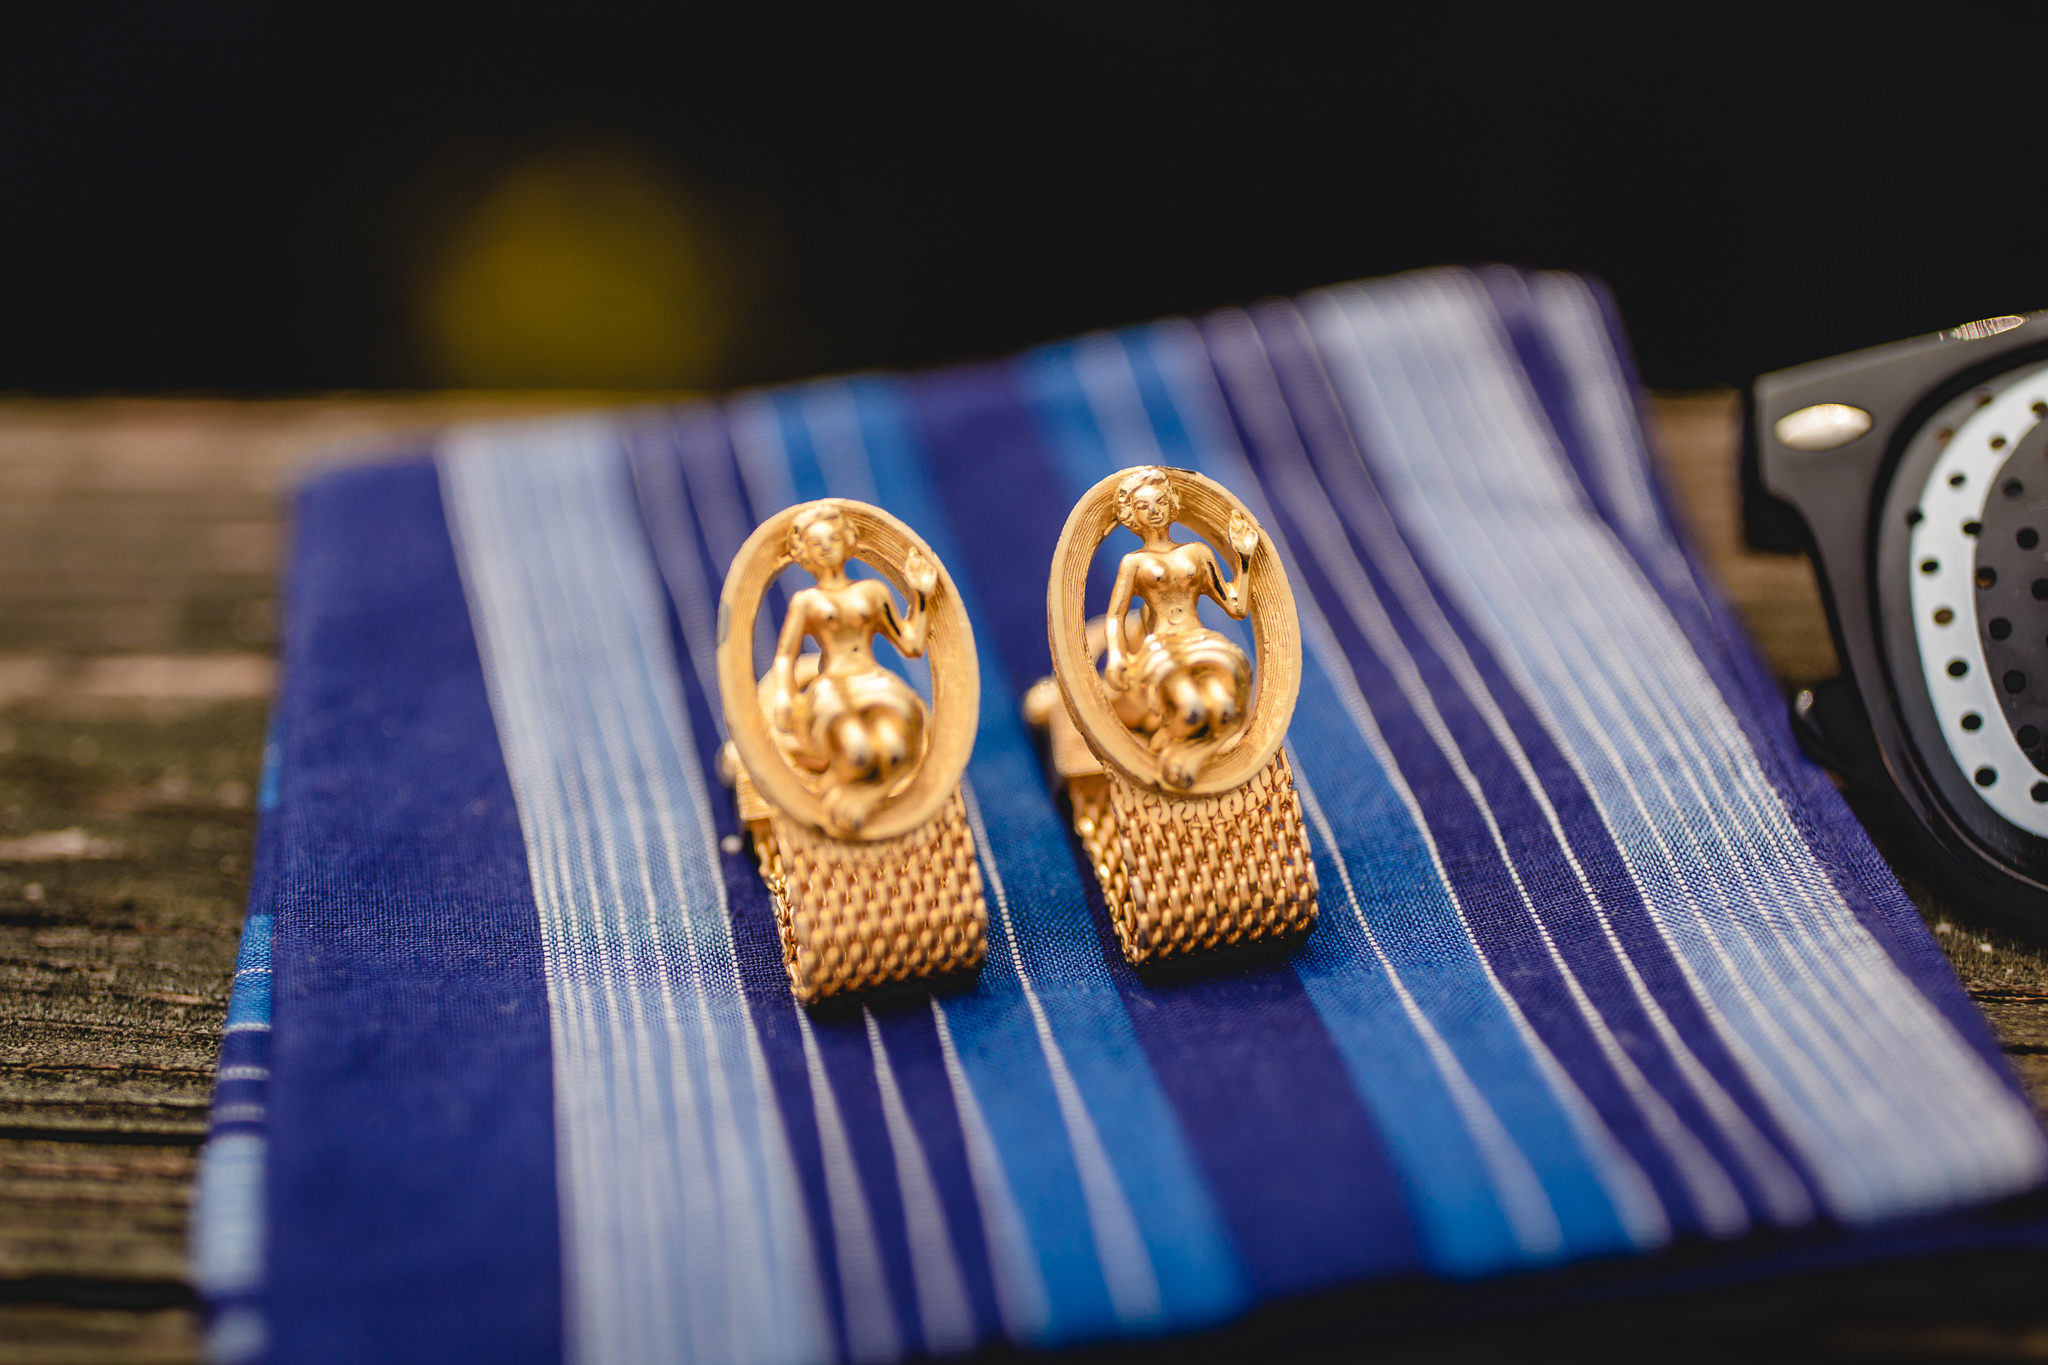 Groom's gold cufflinks sit on his pocket square before his wedding at the Fez